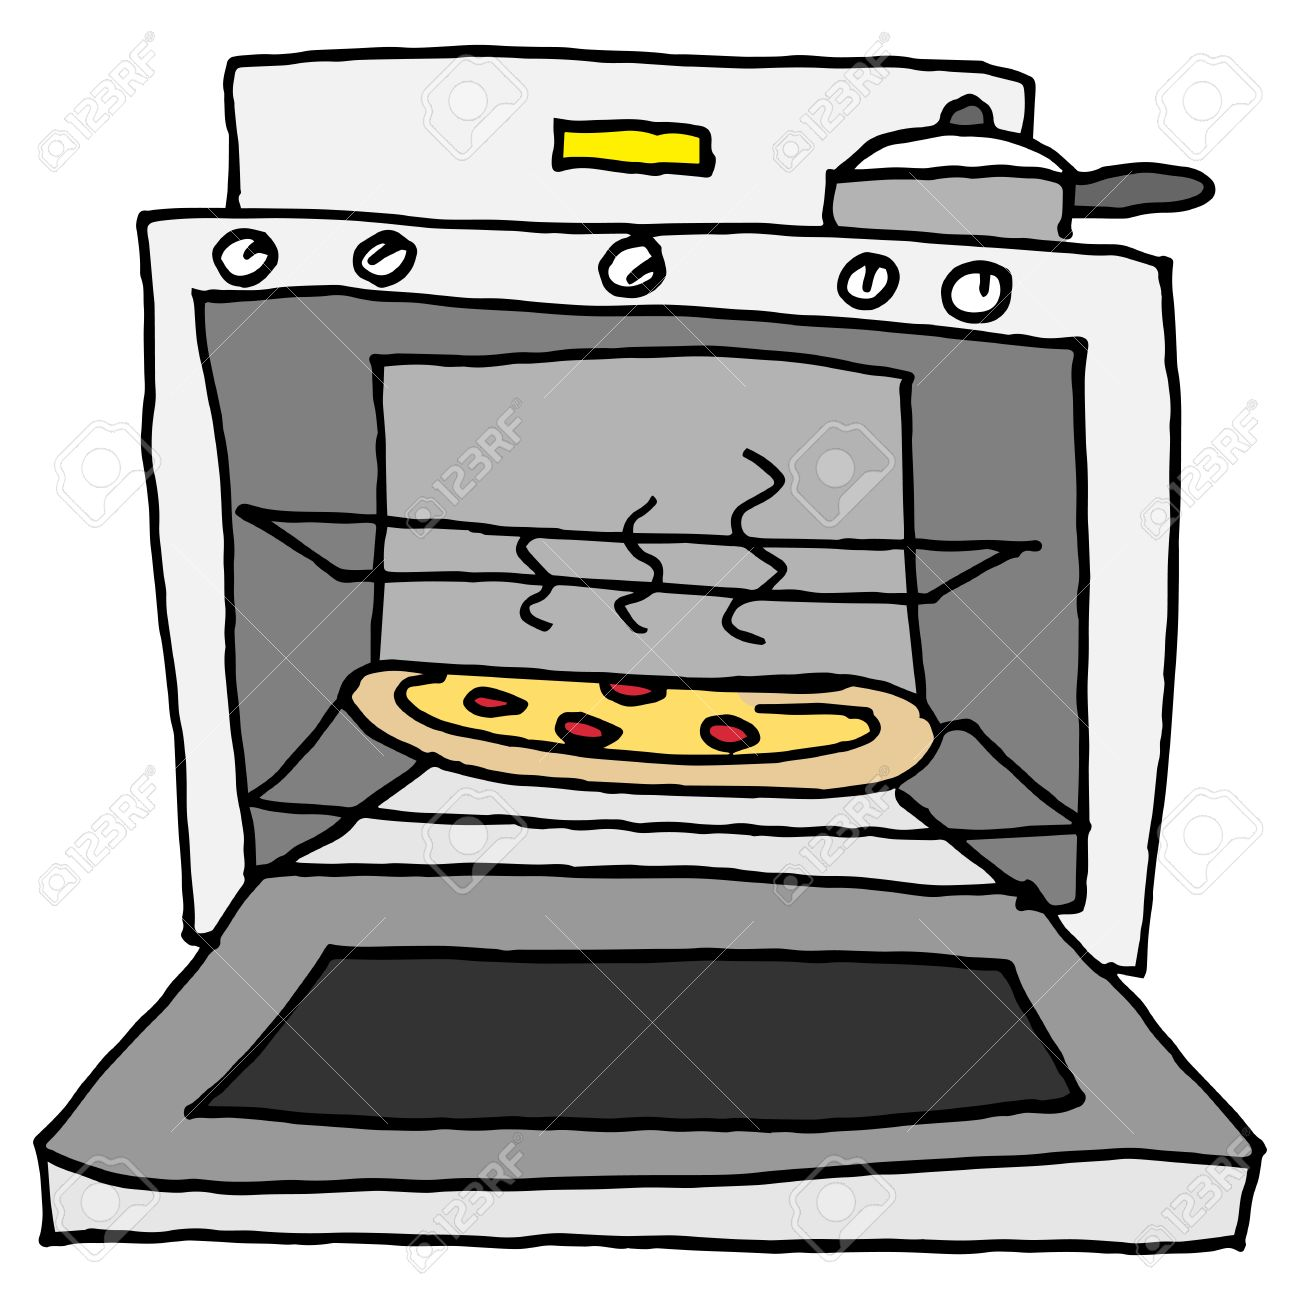 An image of a pizza baking in oven..